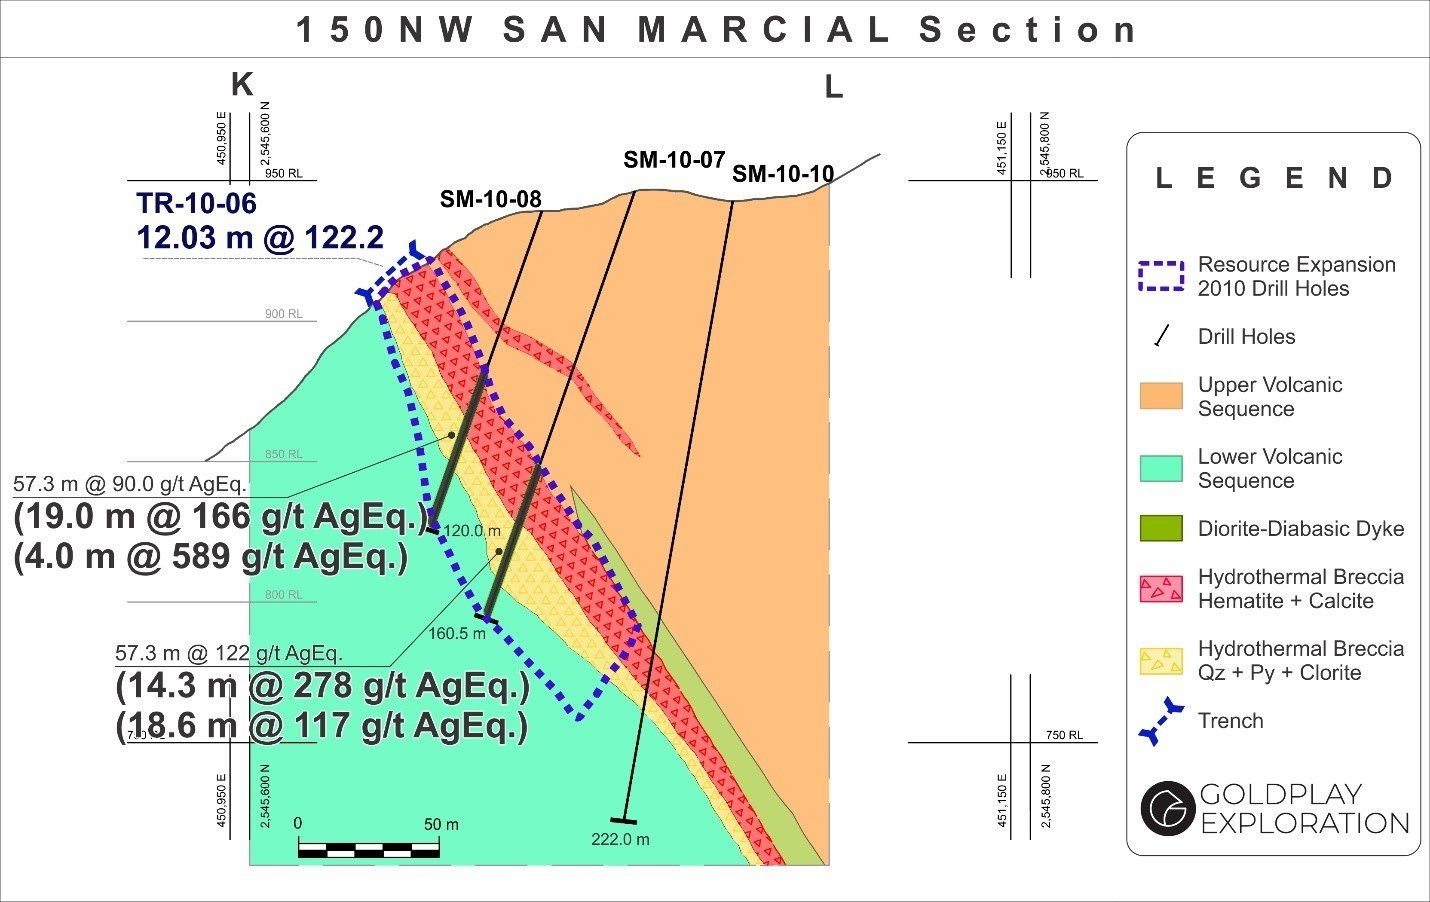 Figure 2: San Marcial Cross Section K-L (CNW Group/Goldplay Exploration Ltd)